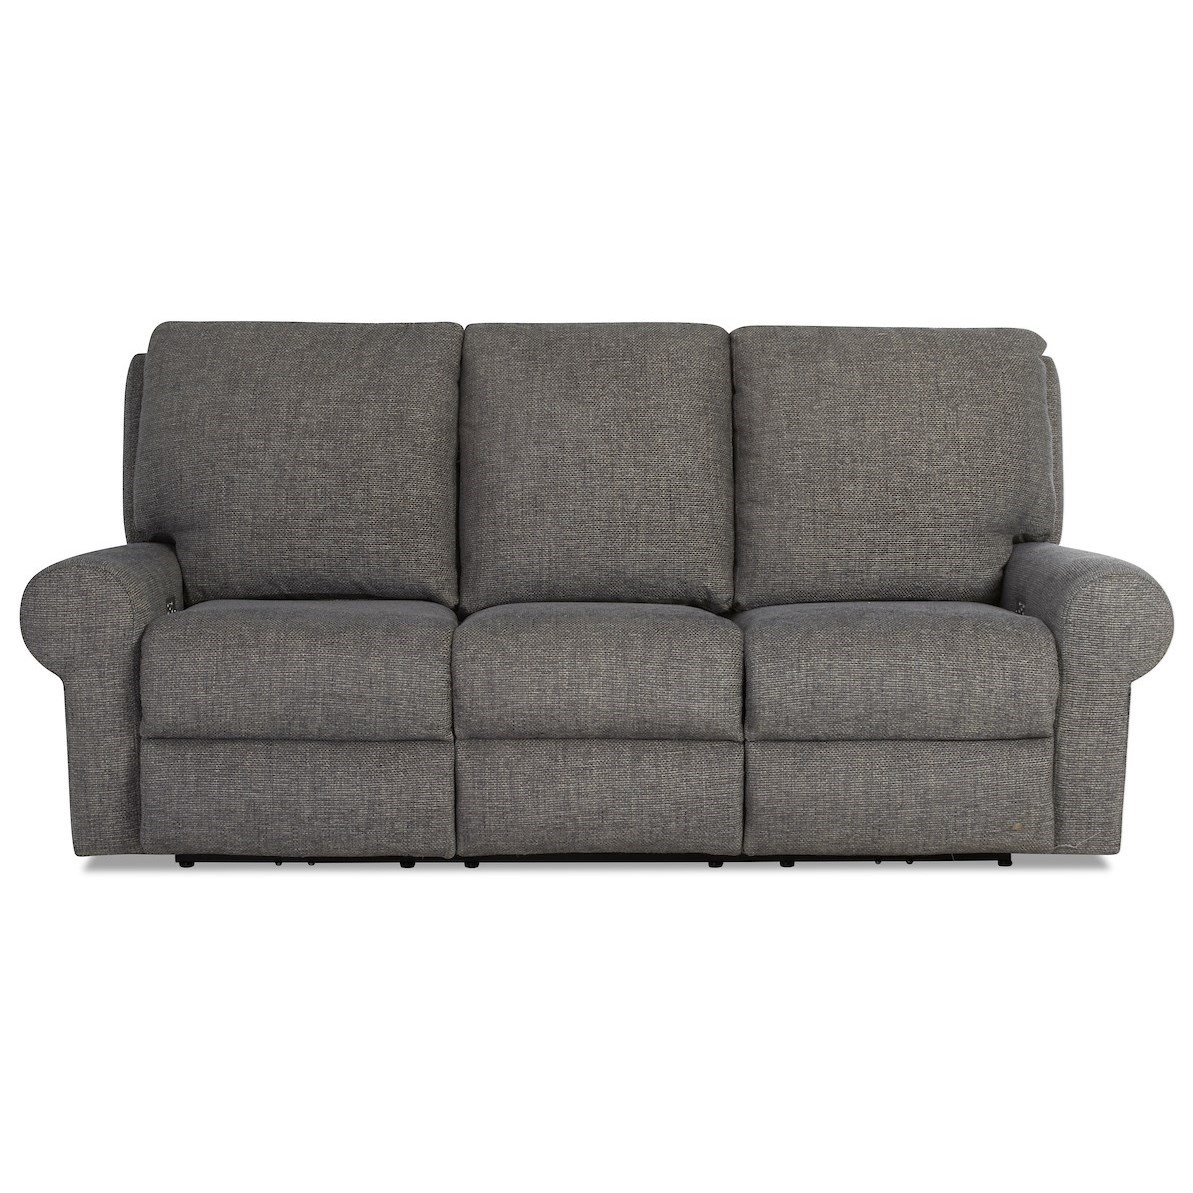 Casual Tailored Power Reclining Sofa with Kool Gel Cushions and Power Headrests